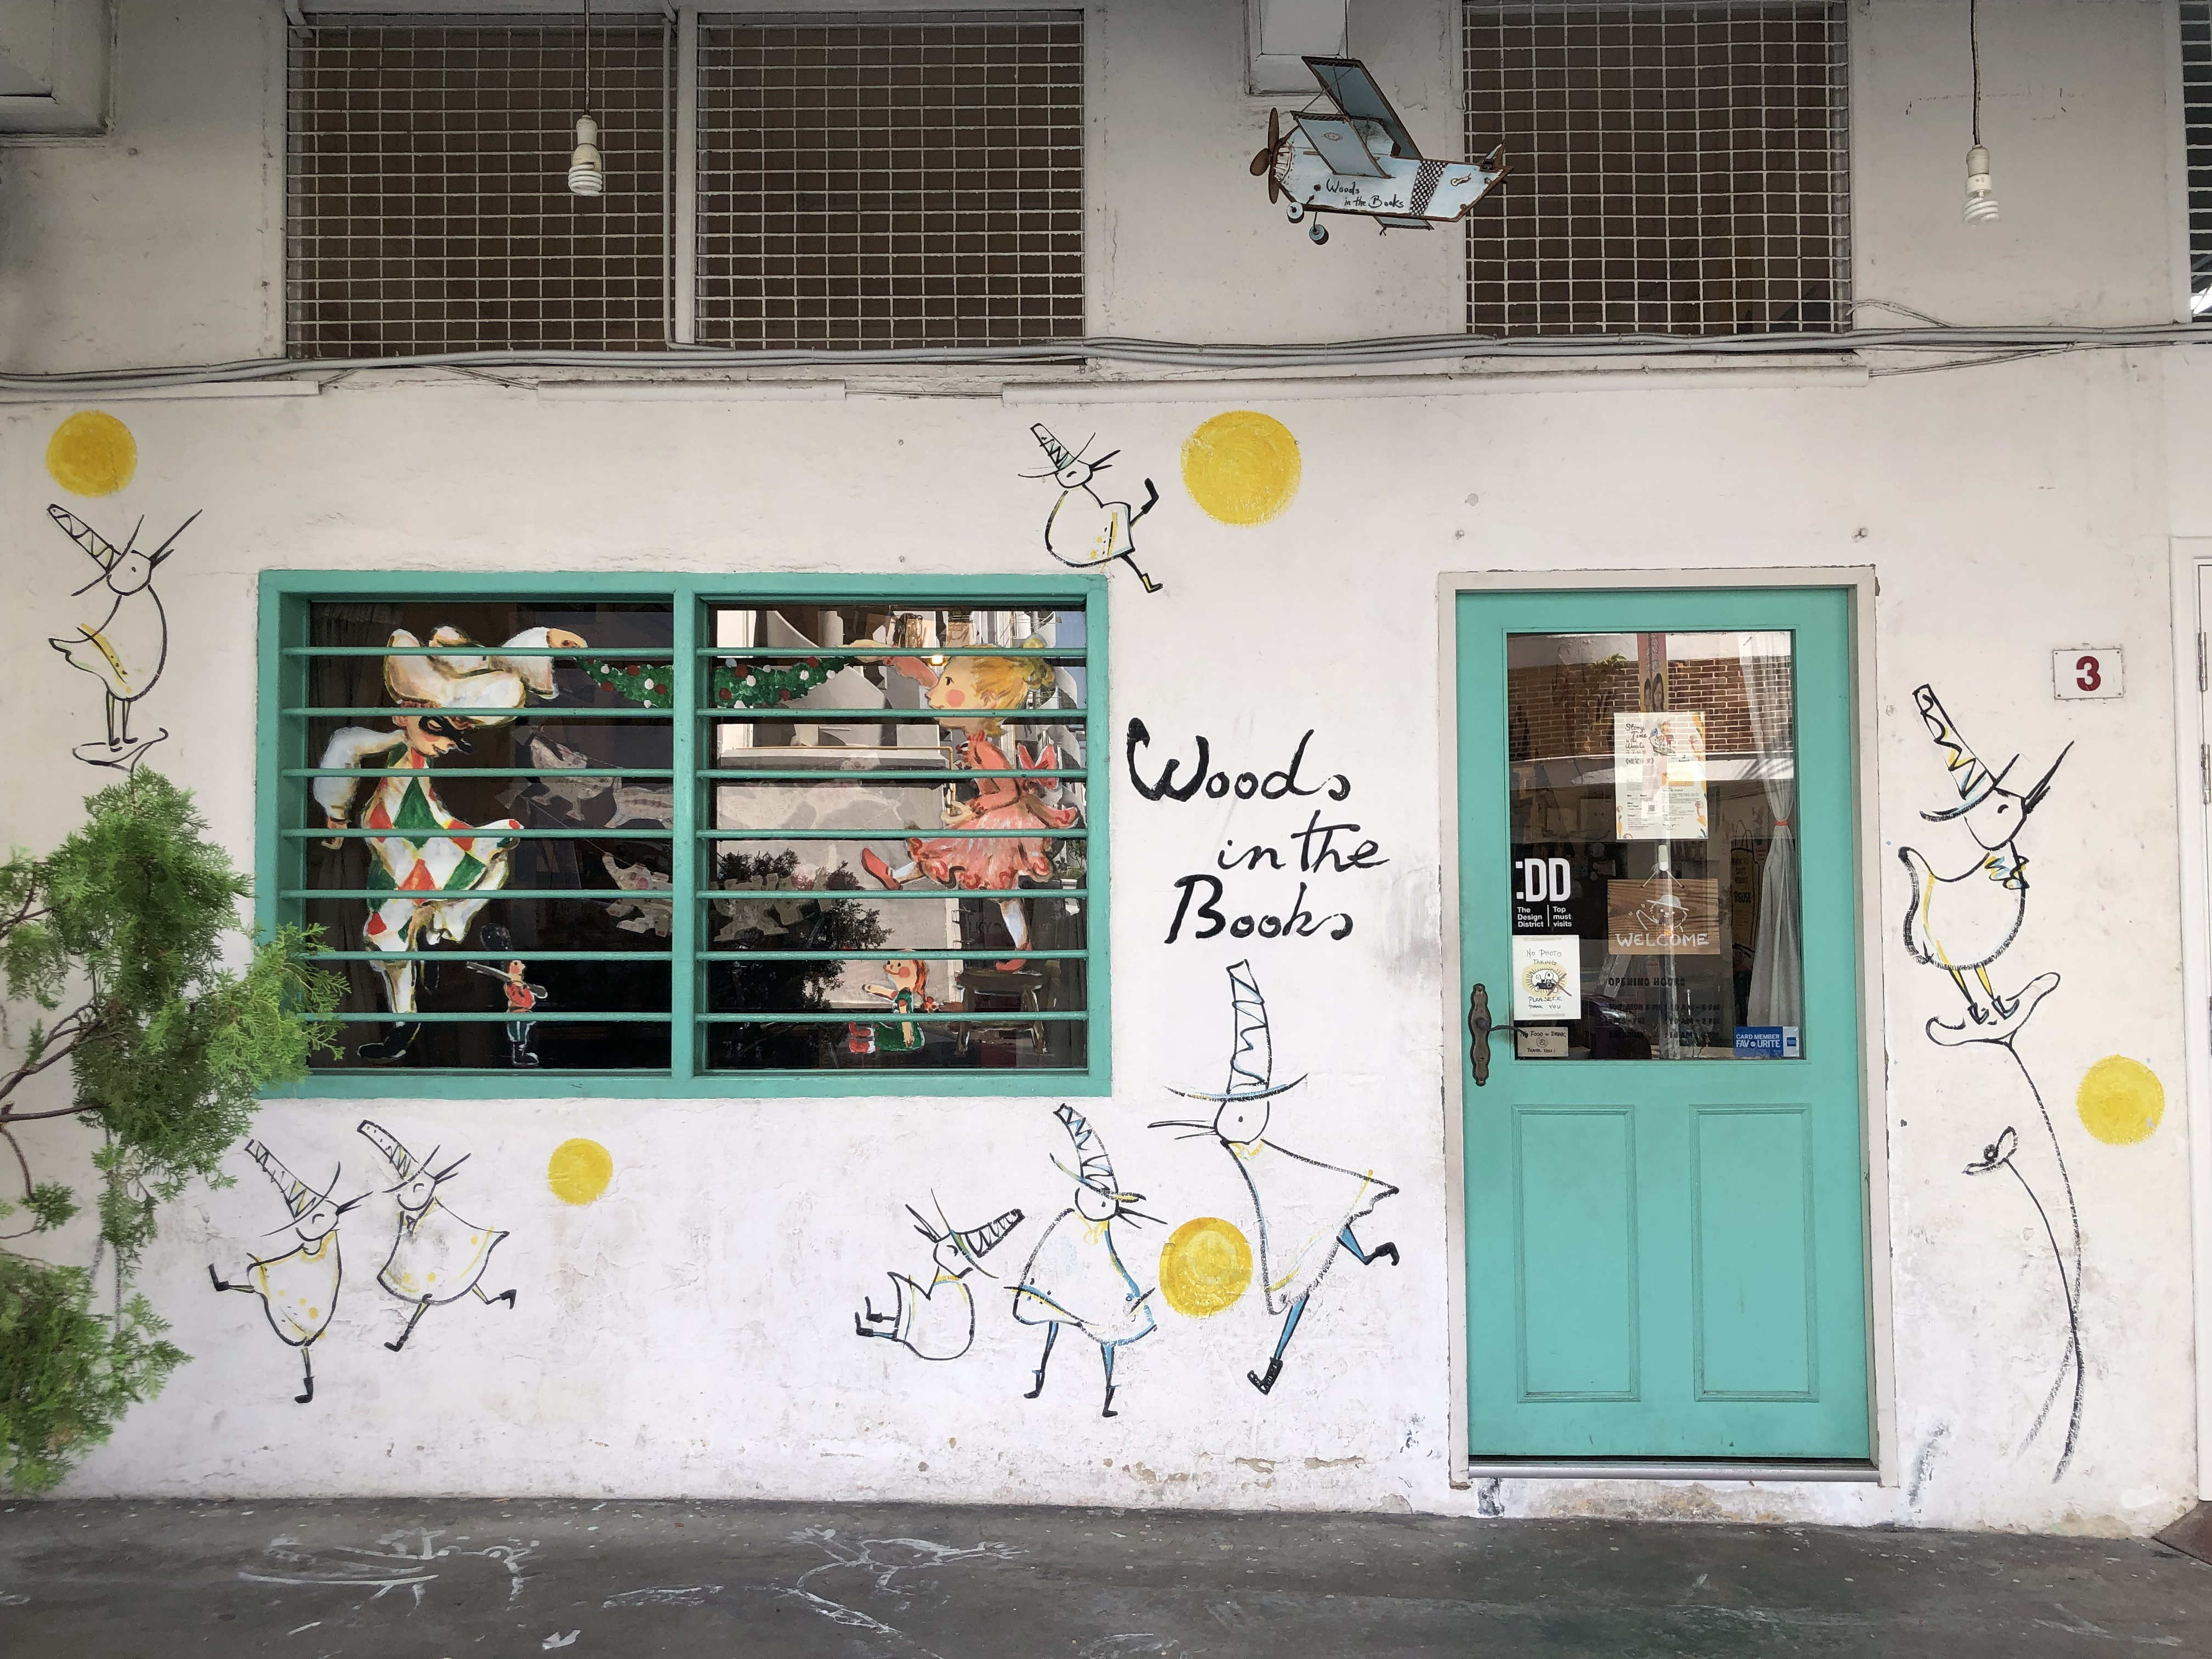 Woods in the Books Tiong Bahru